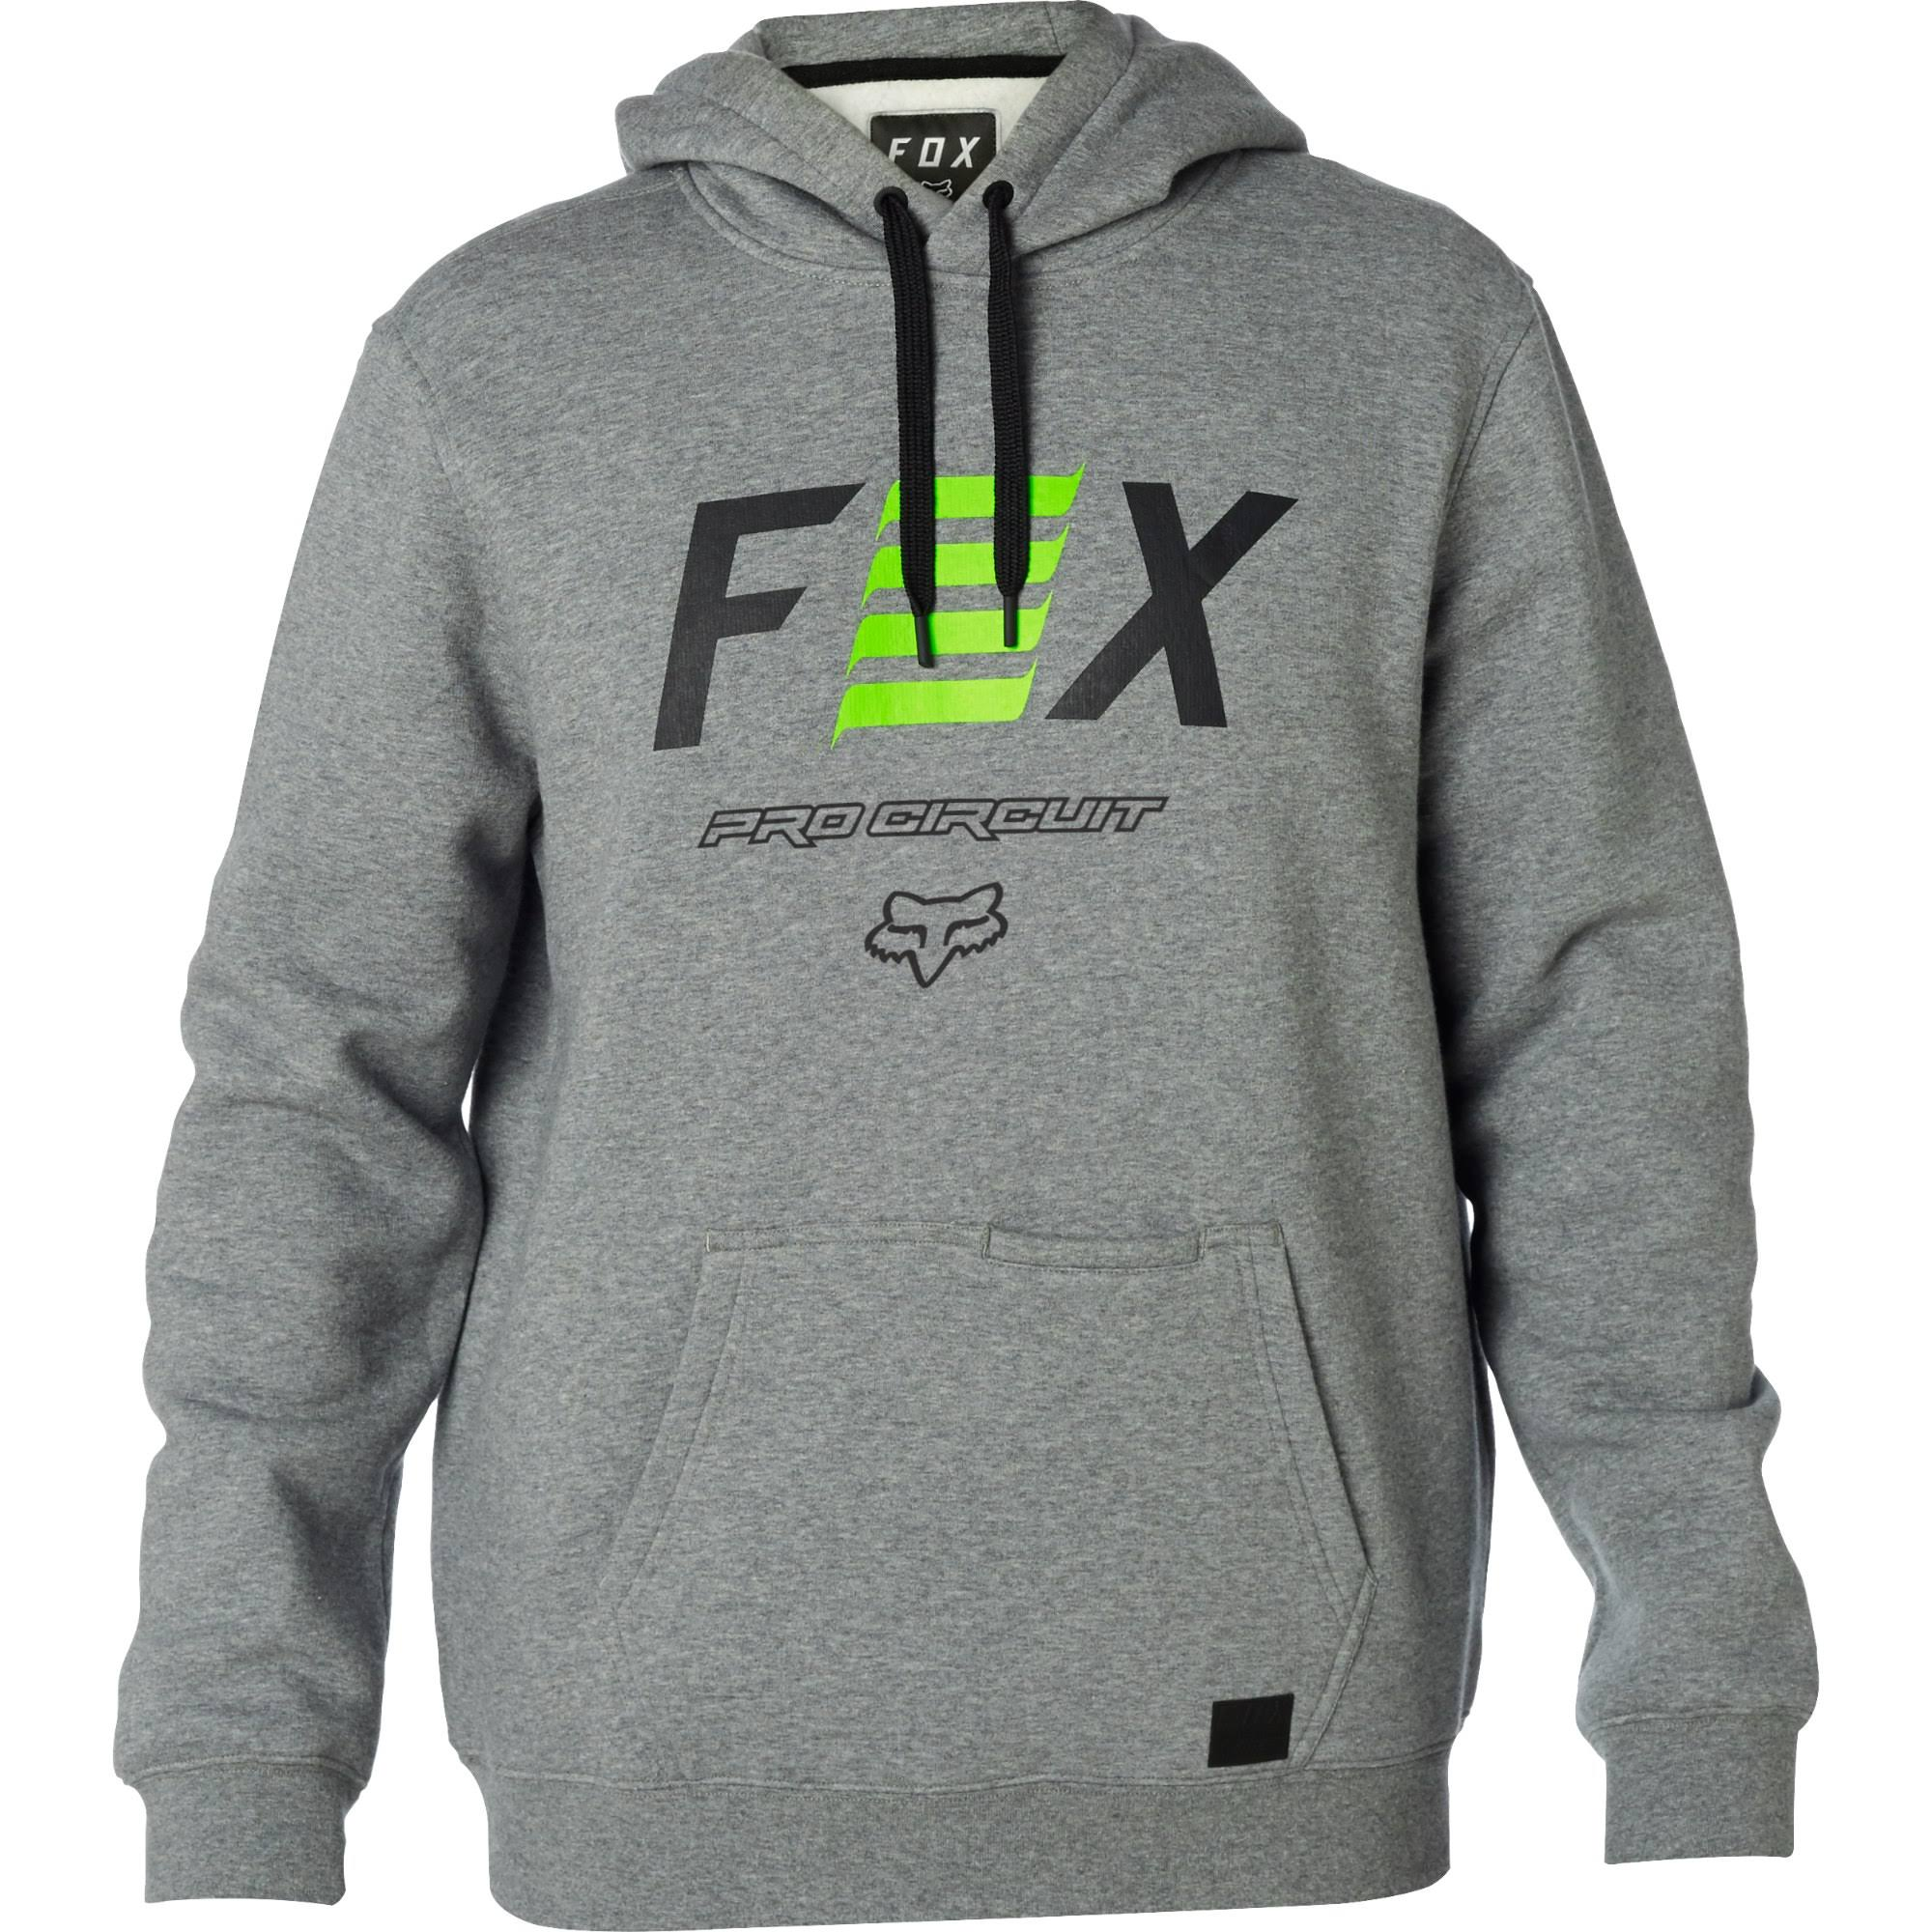 Capucha Fox Sudadera Con Pro Heather Circuit Graphite Pw0105xq